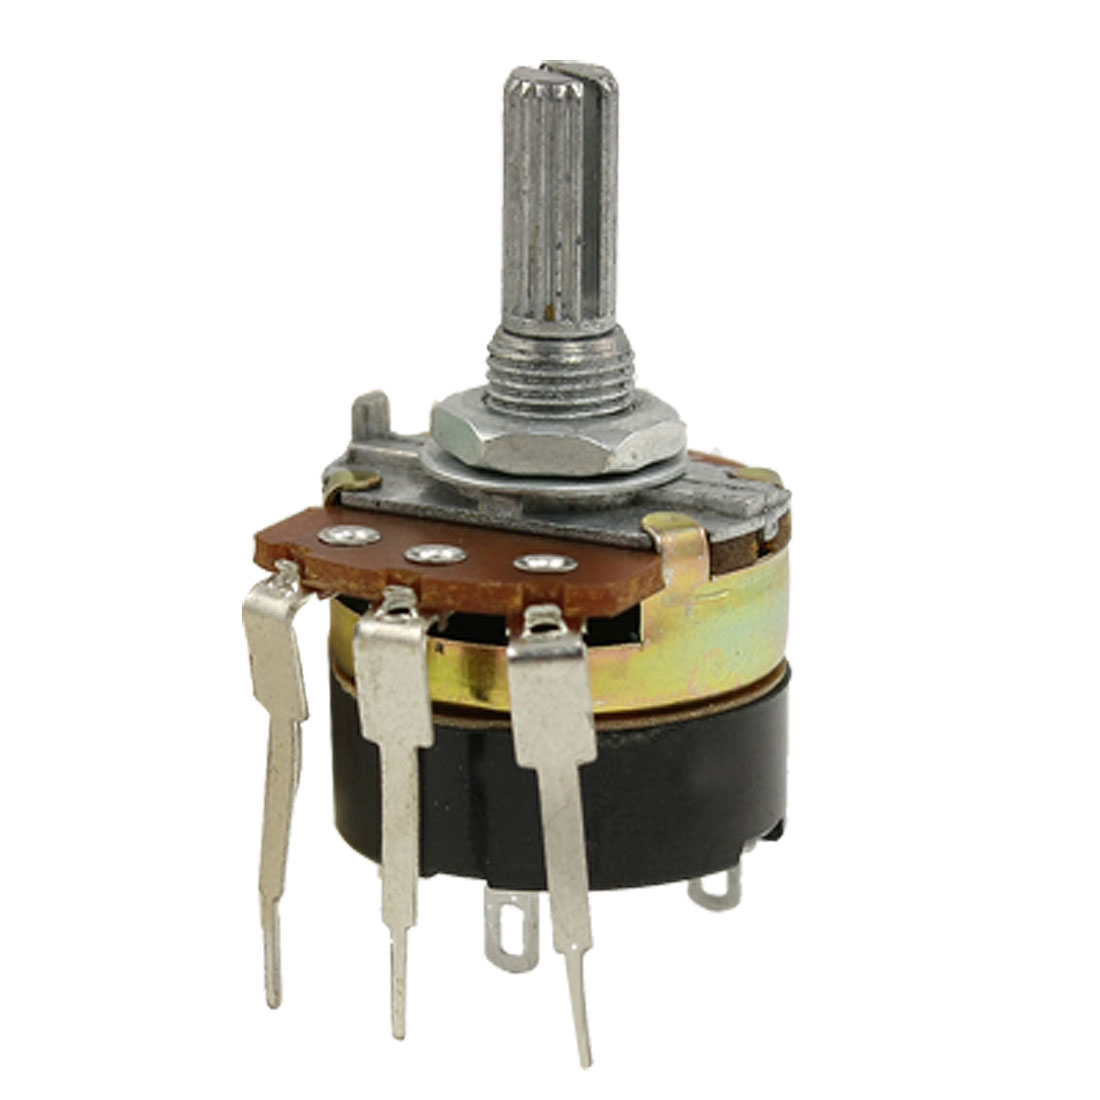 6mm Split Shaft Three Terminal 500K ohm Linear Taper Potentiometer B500K